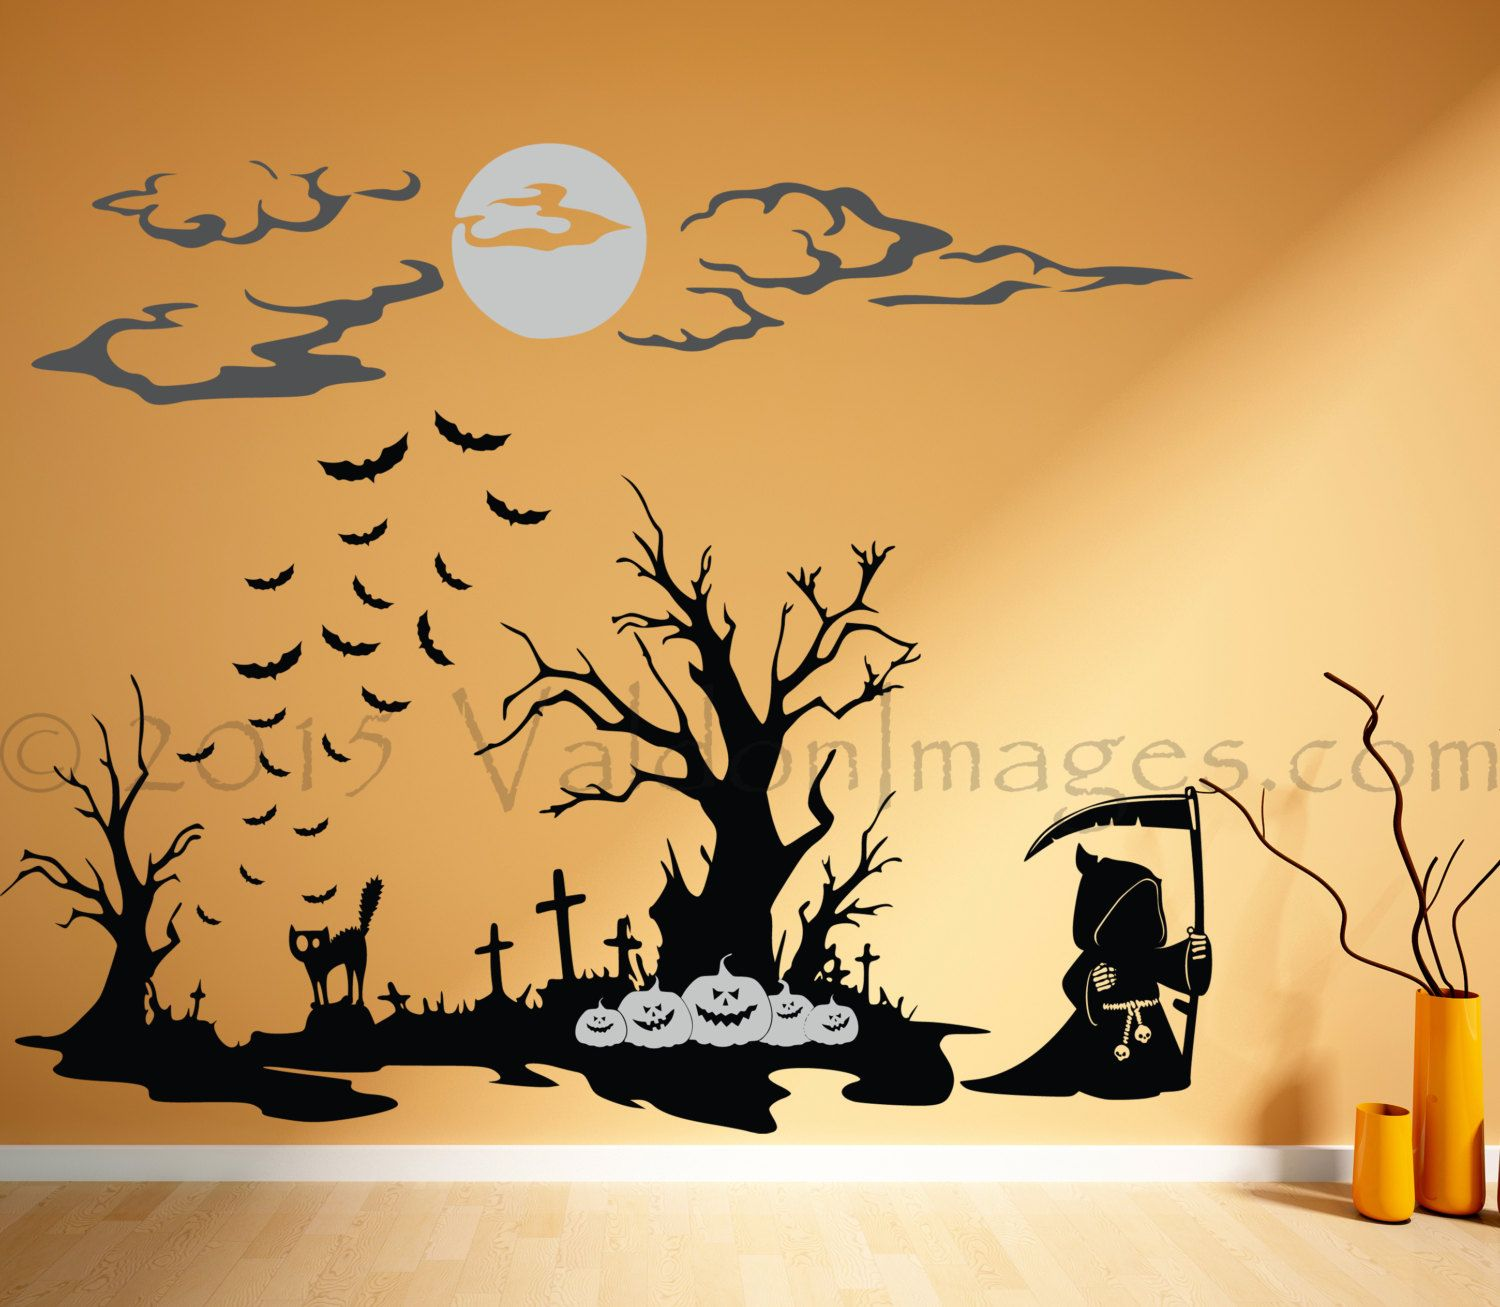 Grims keep wall decal, Halloween wall decal, grim reaper decal ...